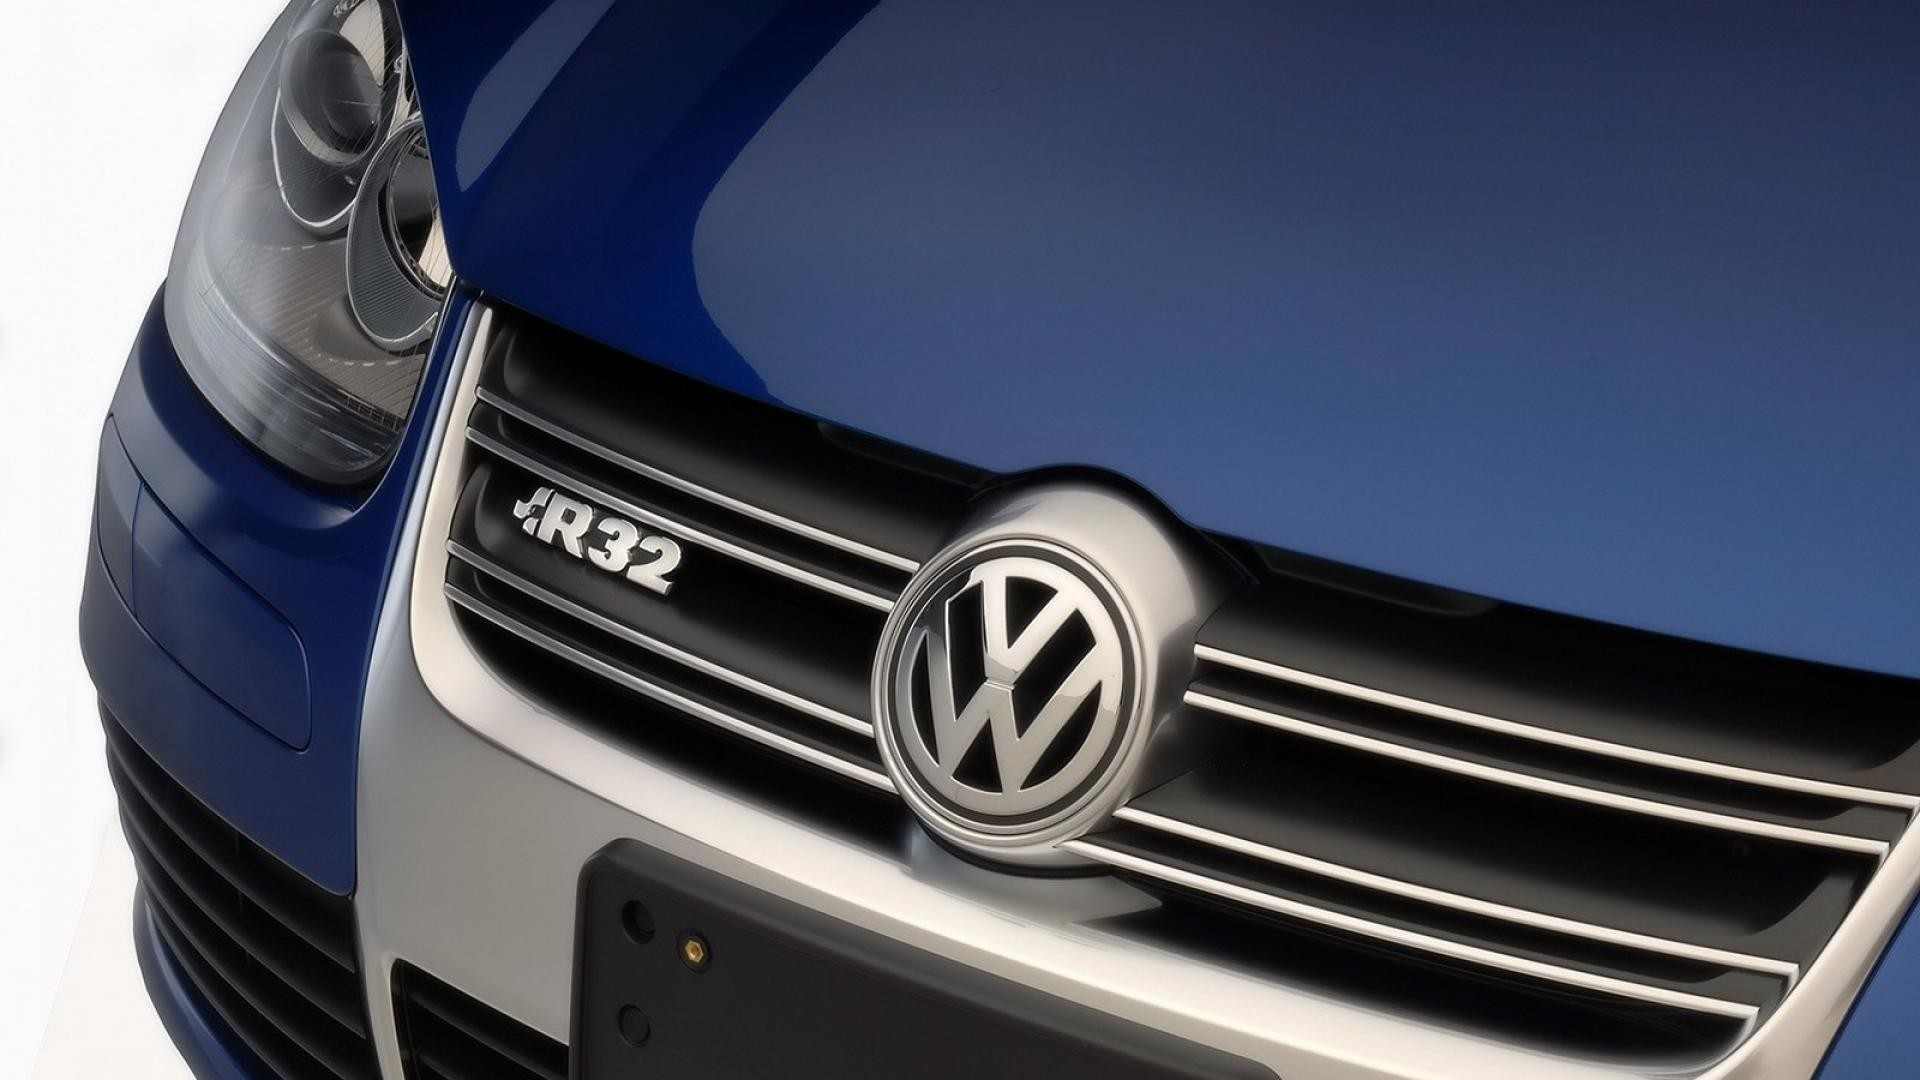 Res: 1920x1080, volkswagen golf r32 logo r hd wallpaper - (#7605) - HQ Desktop .